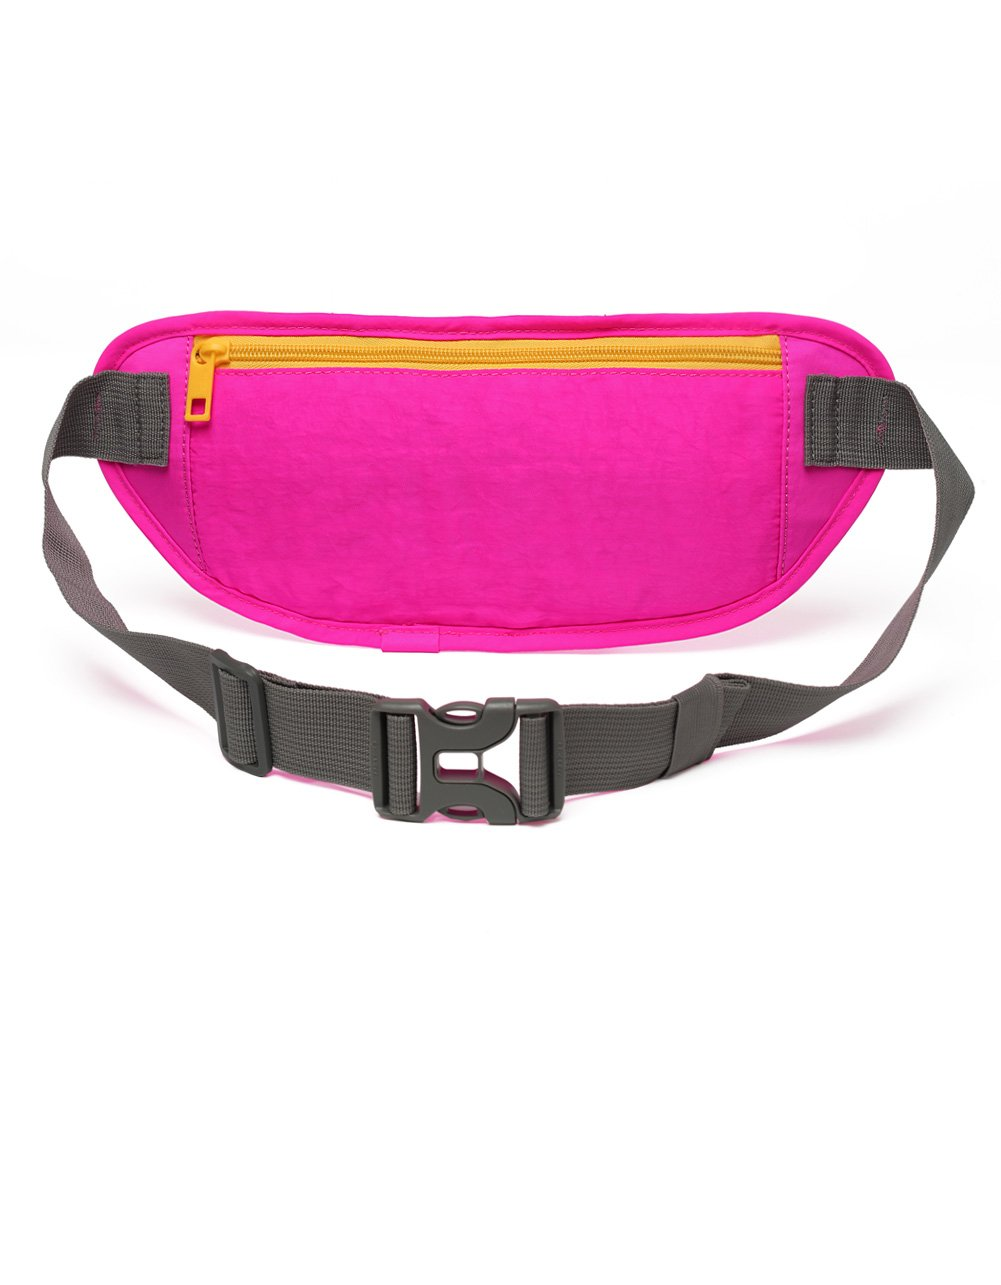 Water Resistant Waist Bag Pack for Man Women